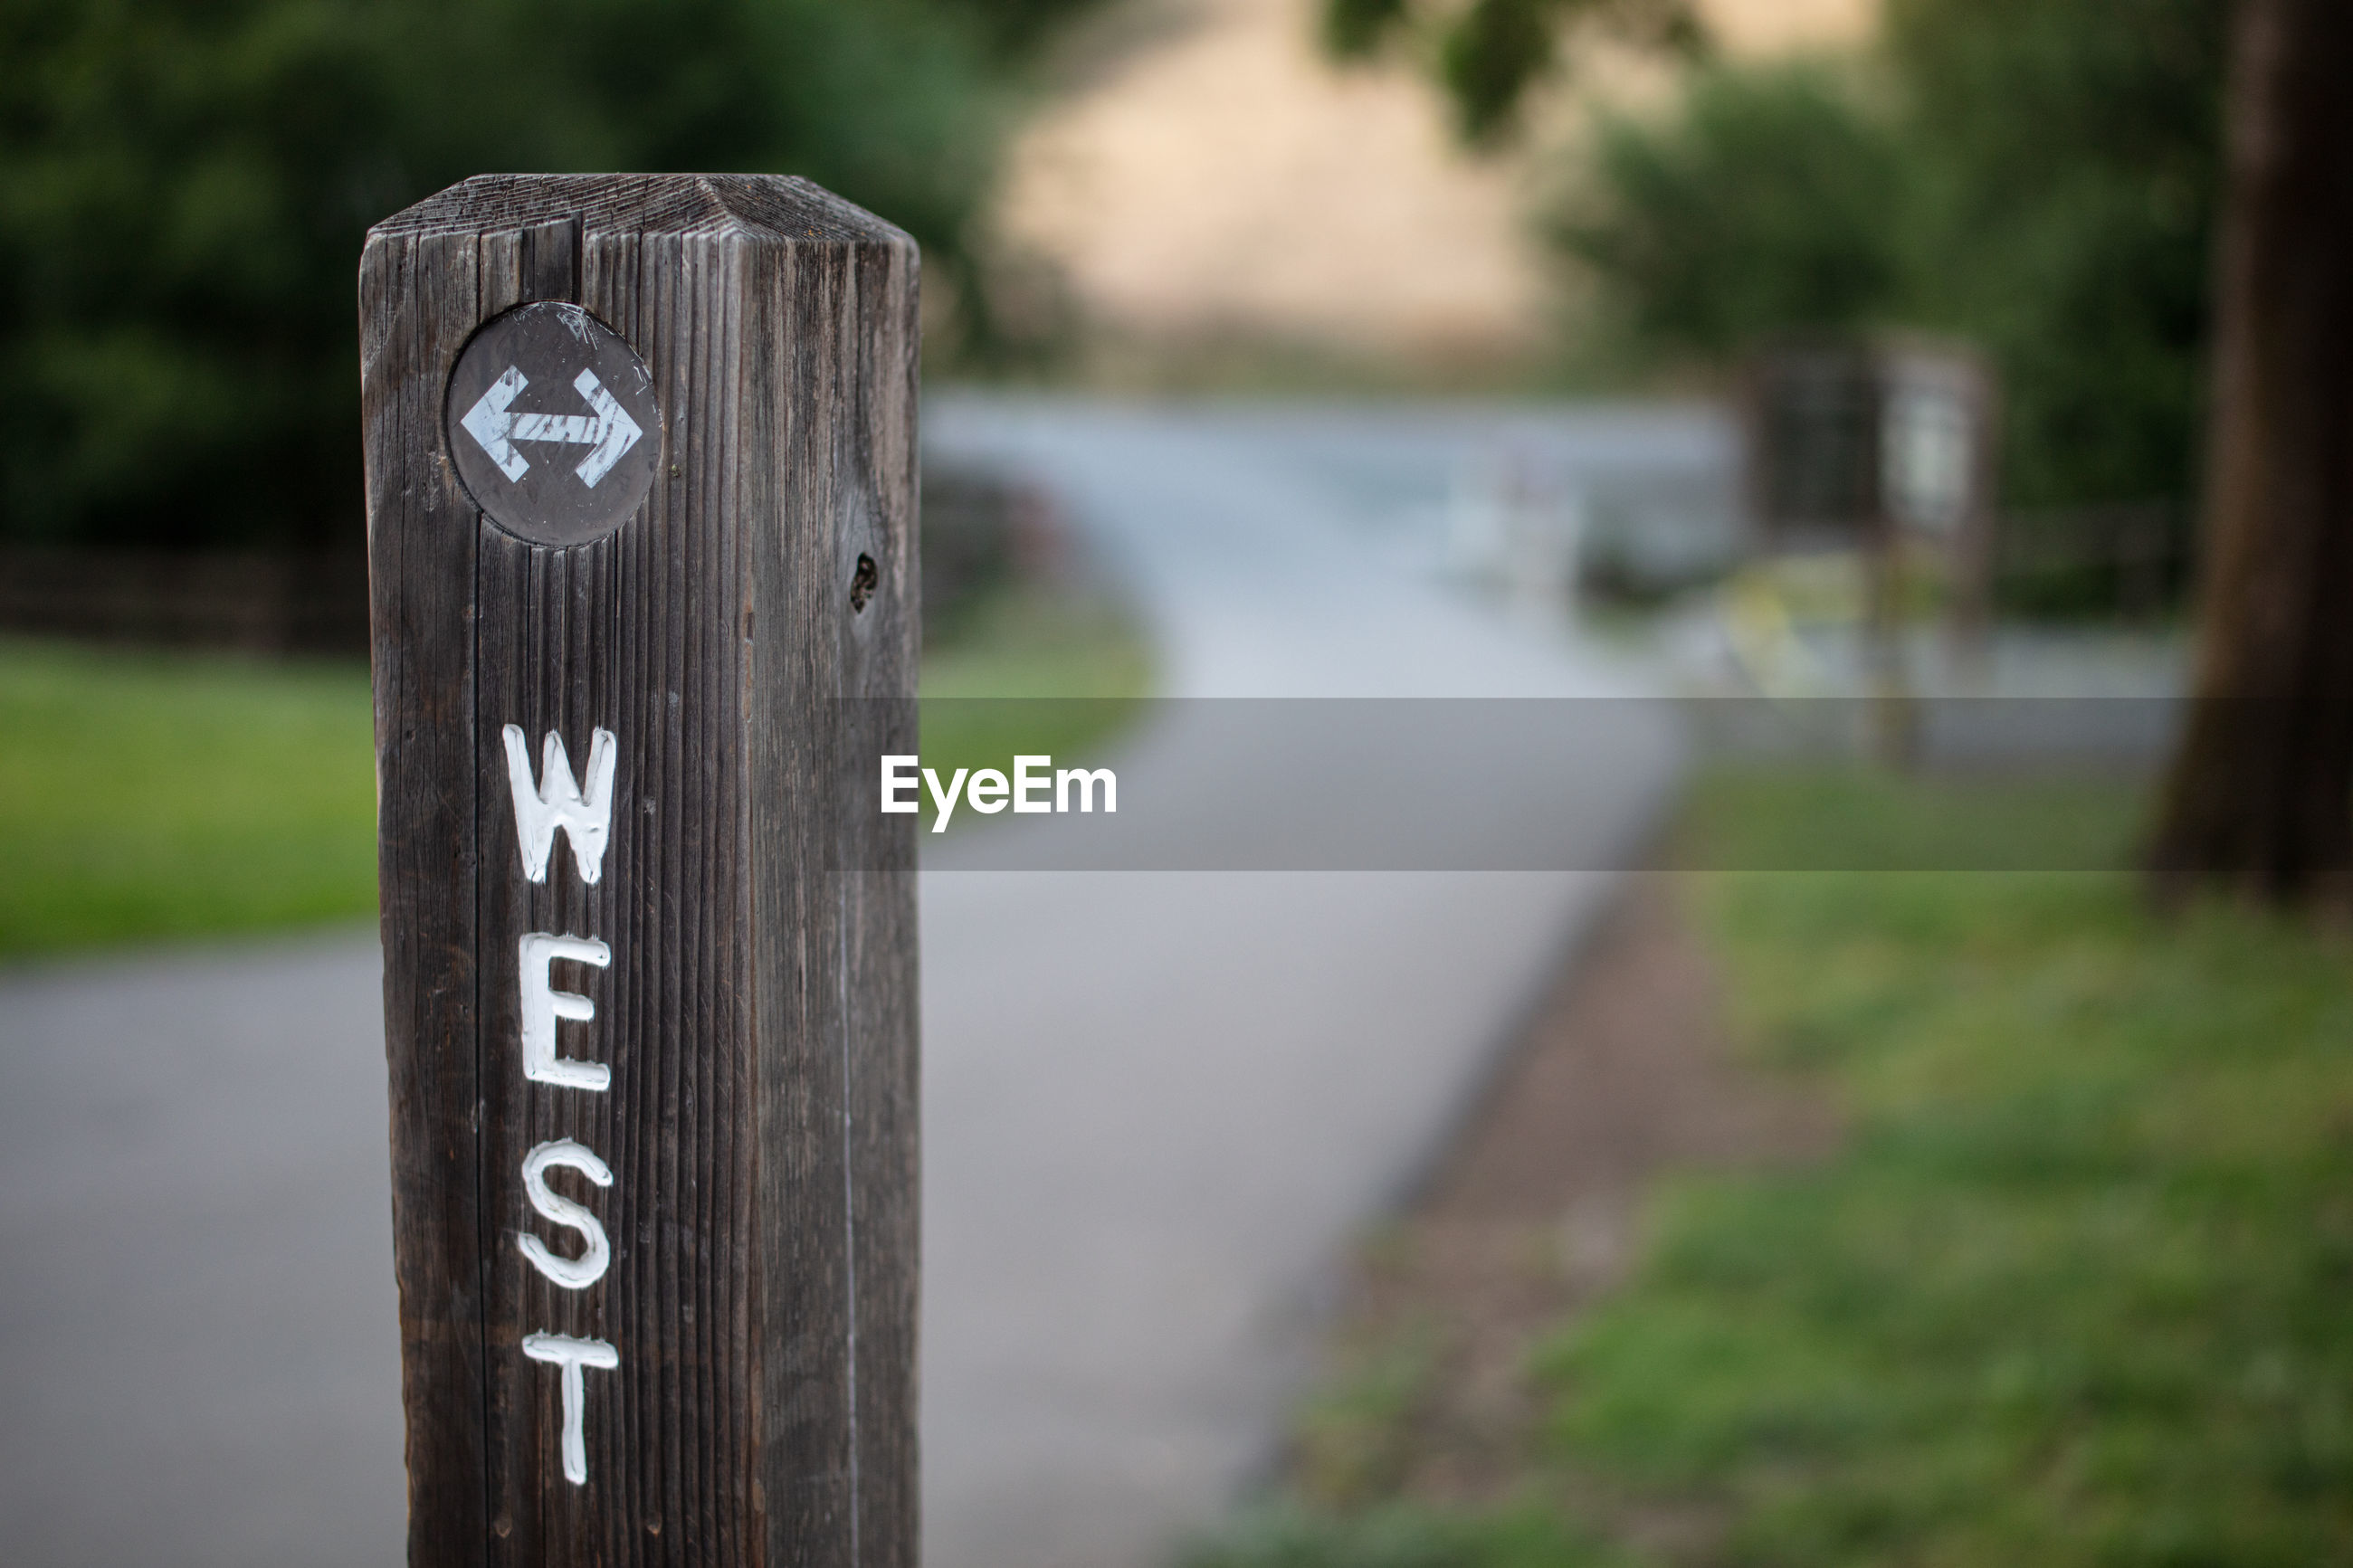 CLOSE-UP OF INFORMATION SIGN ON WOODEN POST AT FIELD